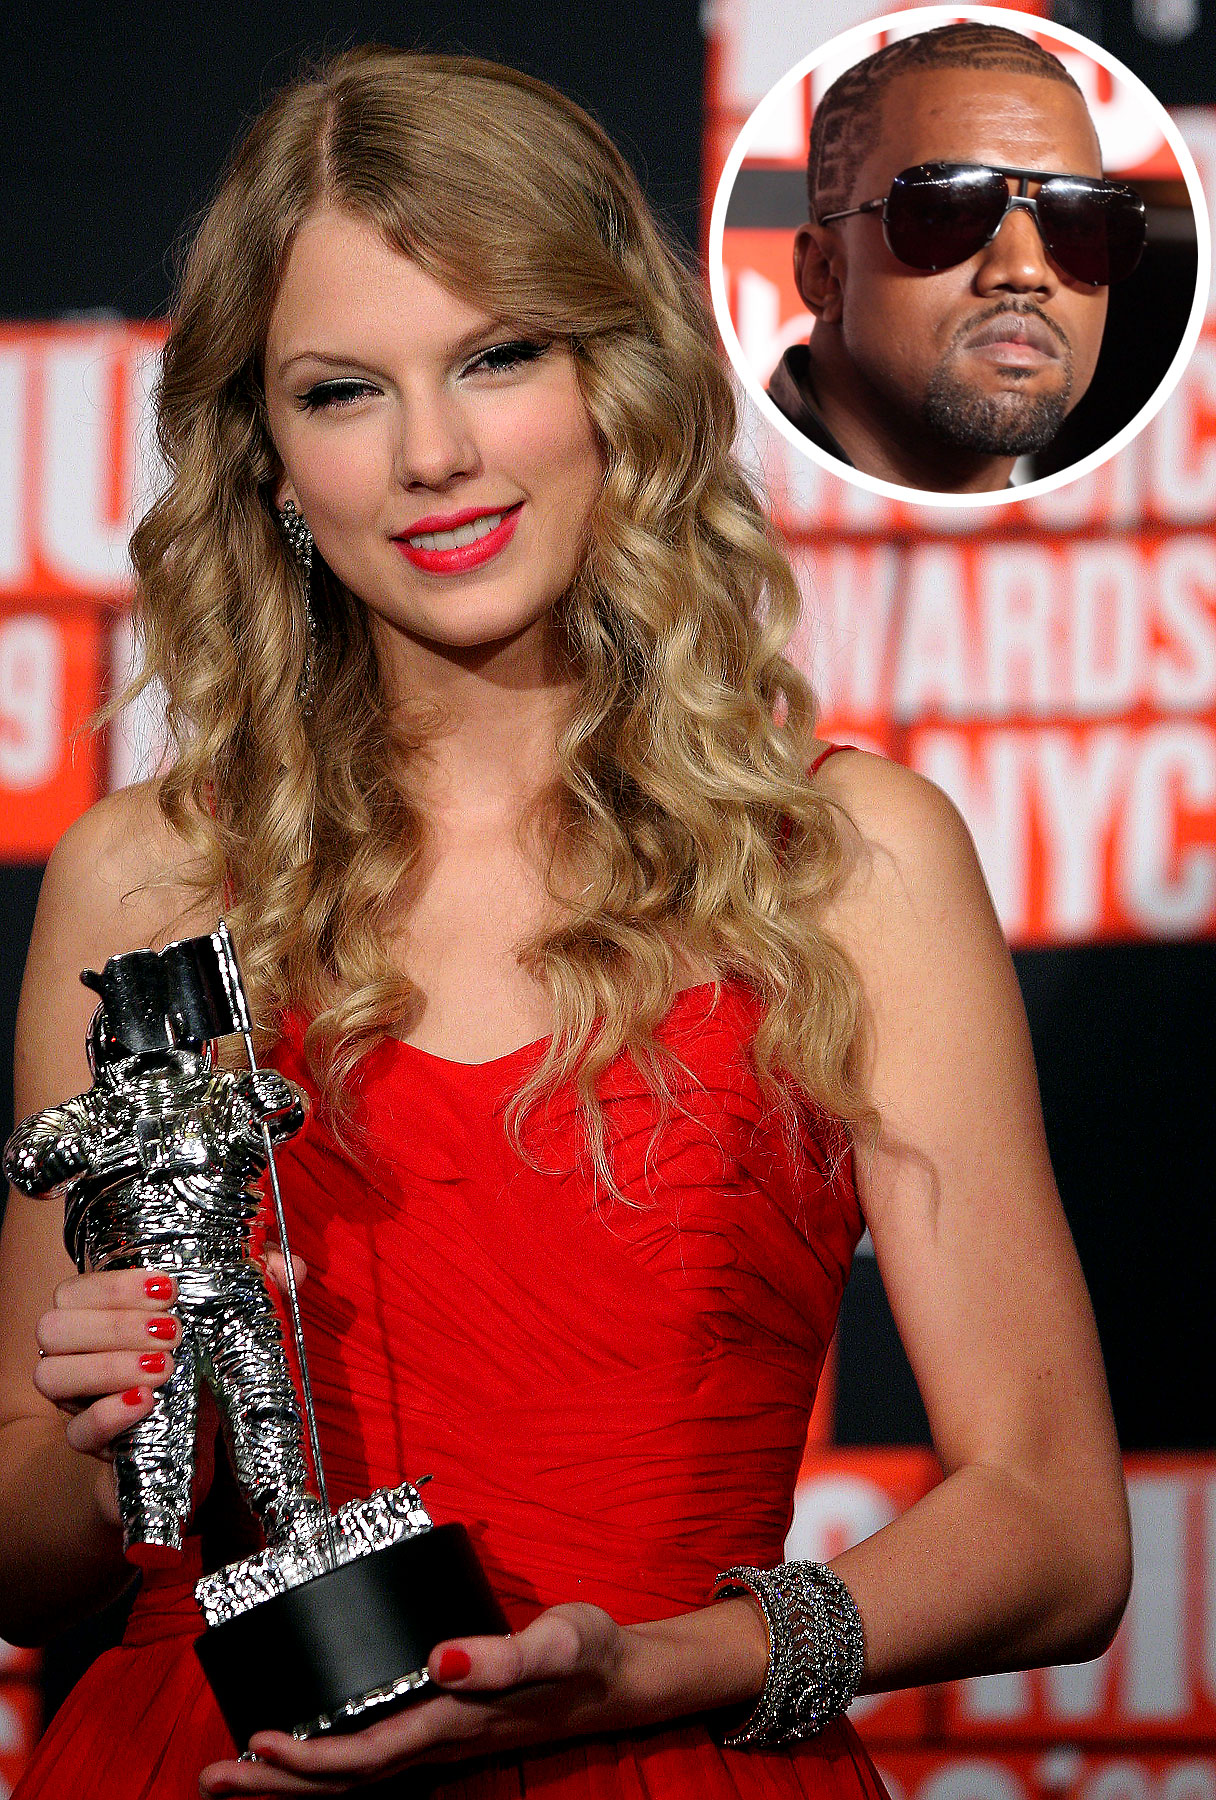 Kanye West Finally Apologizes to Taylor Swift